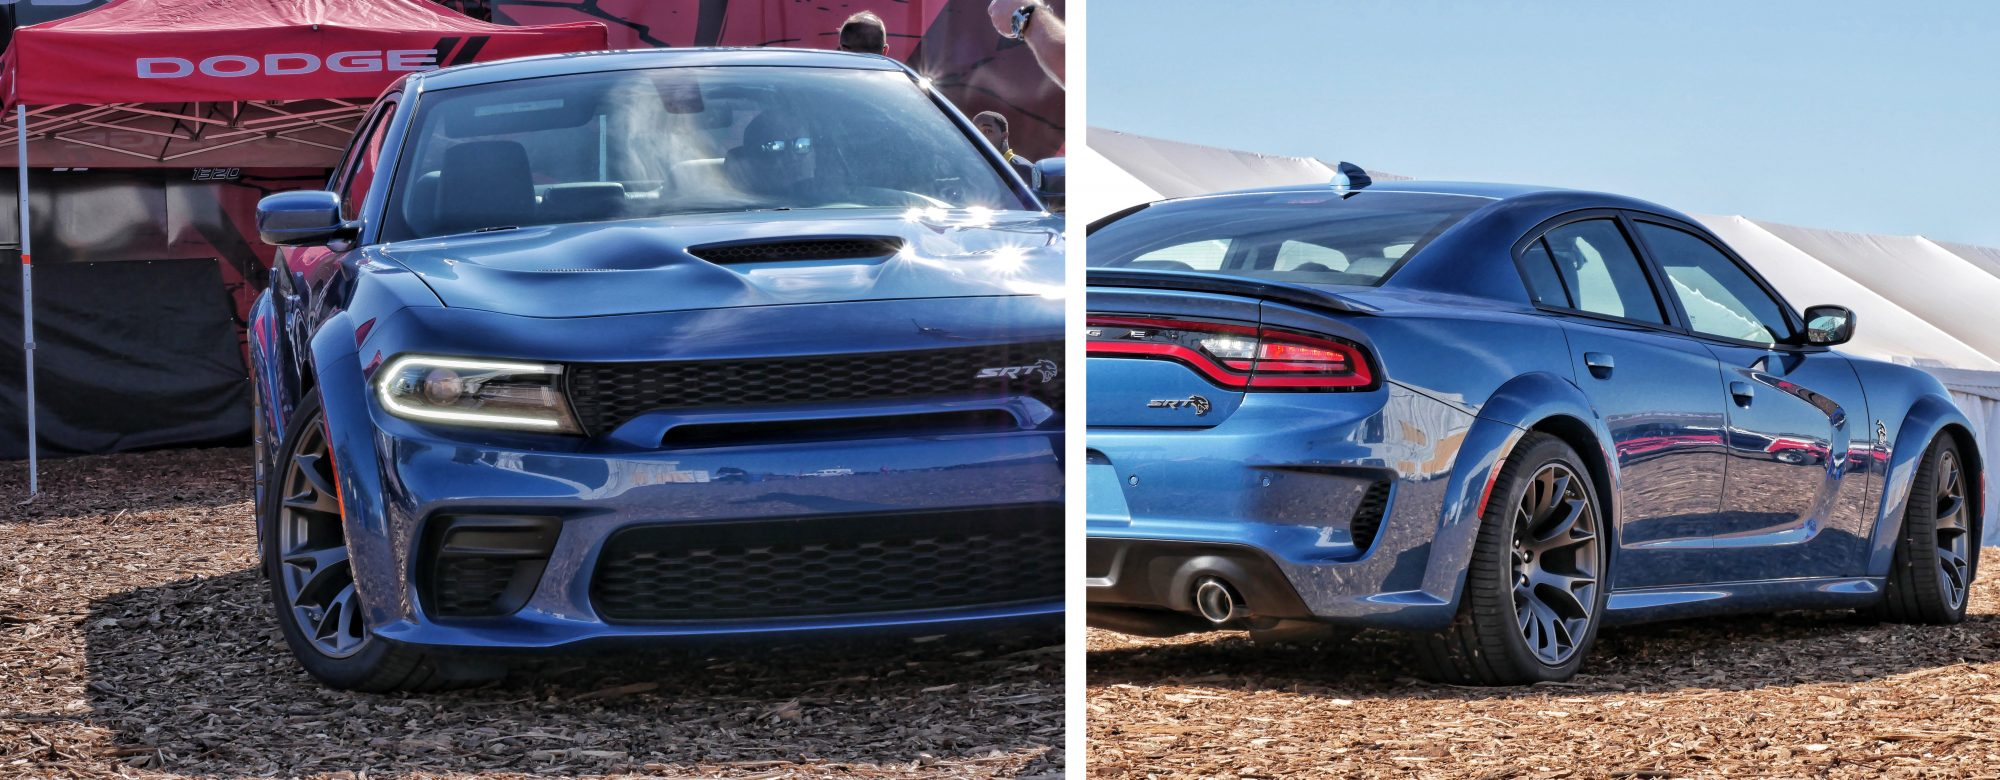 2020 Dodge Charger SRT Hellcat